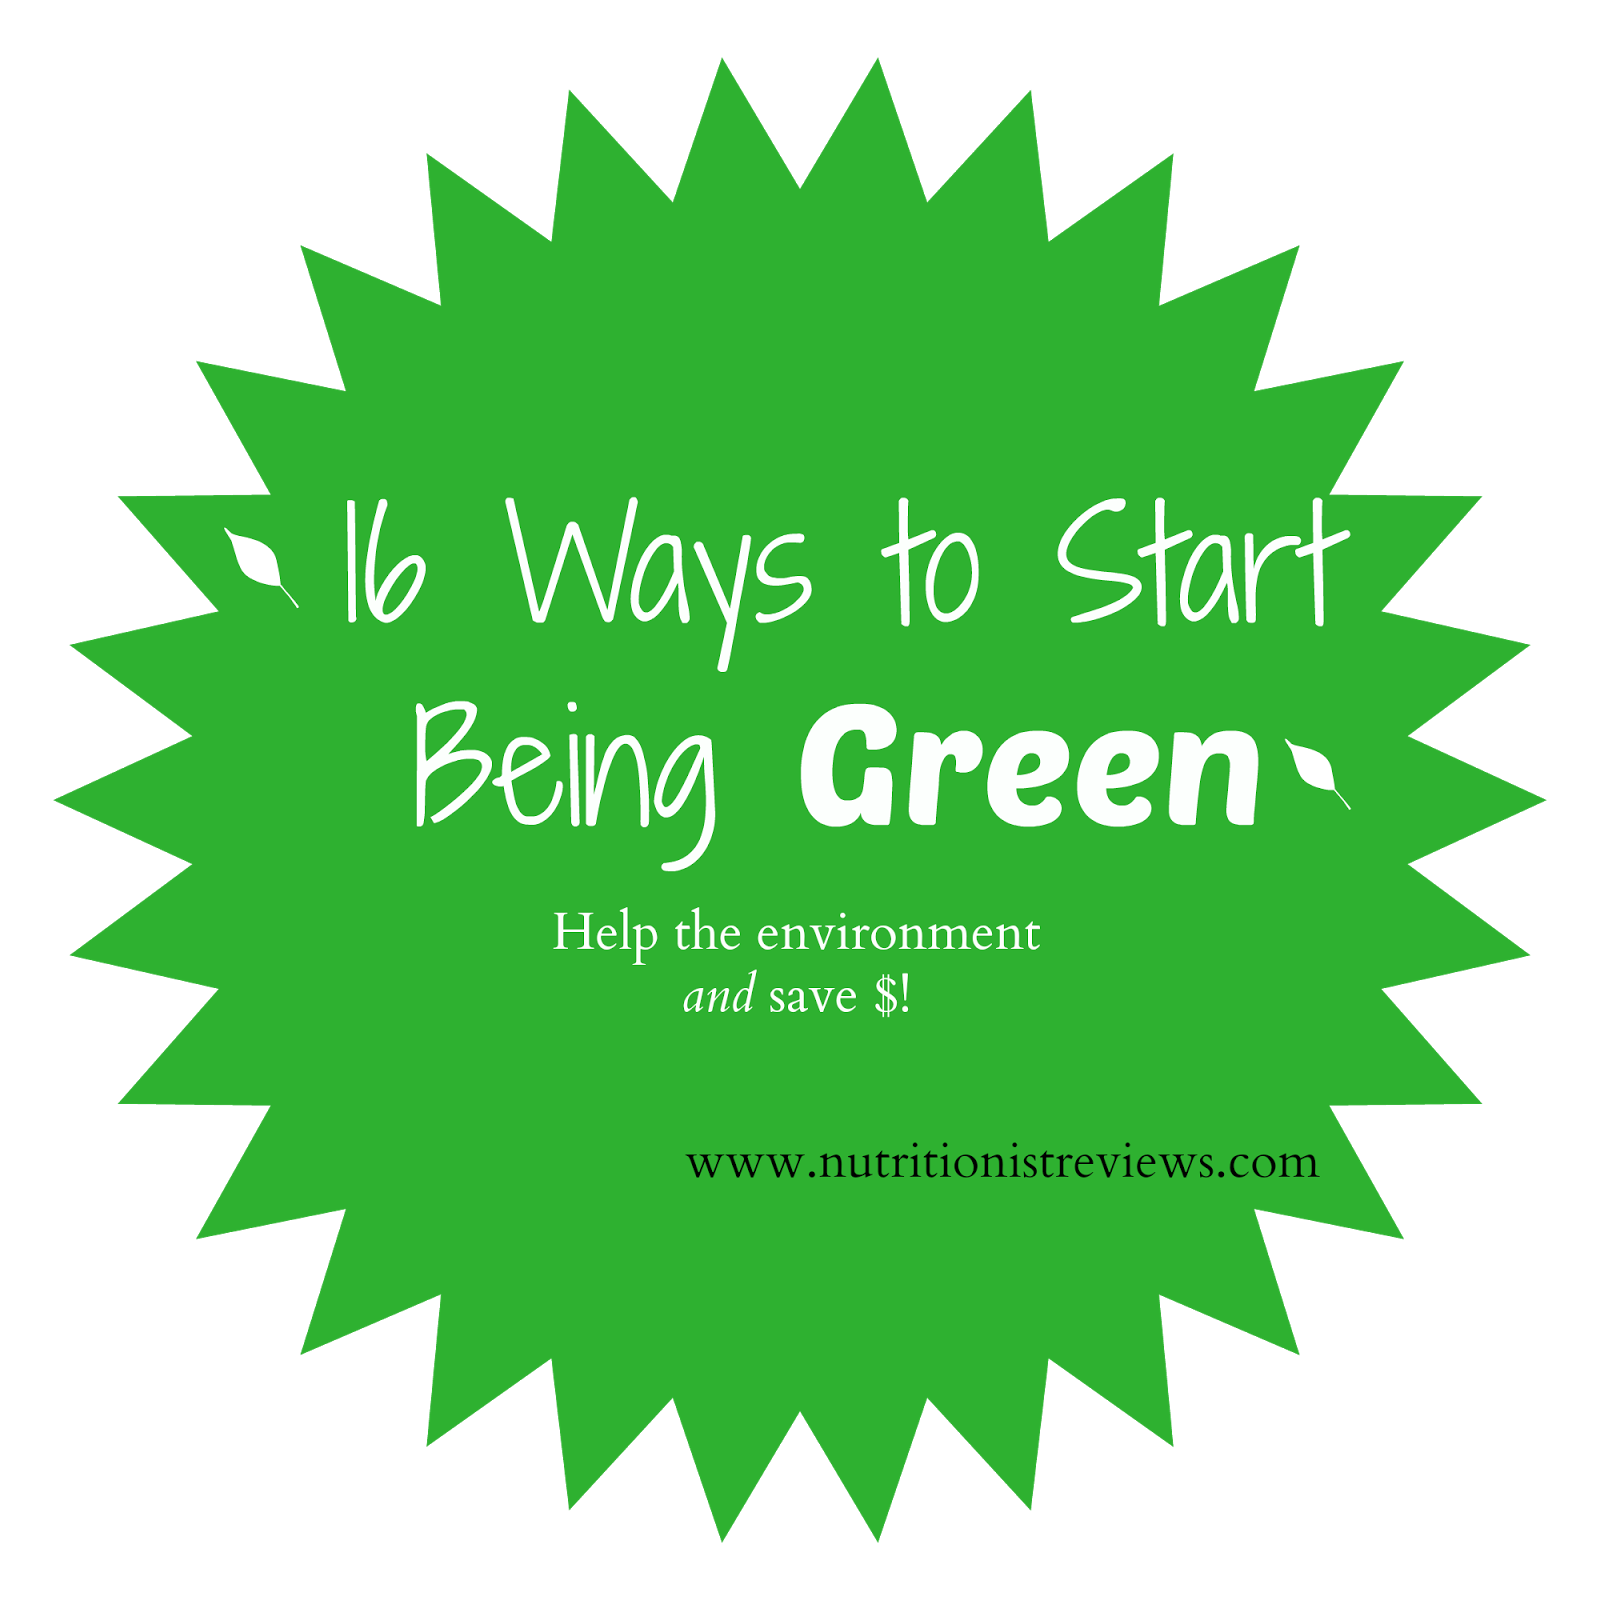 16 Easy Ways to Start Being Green